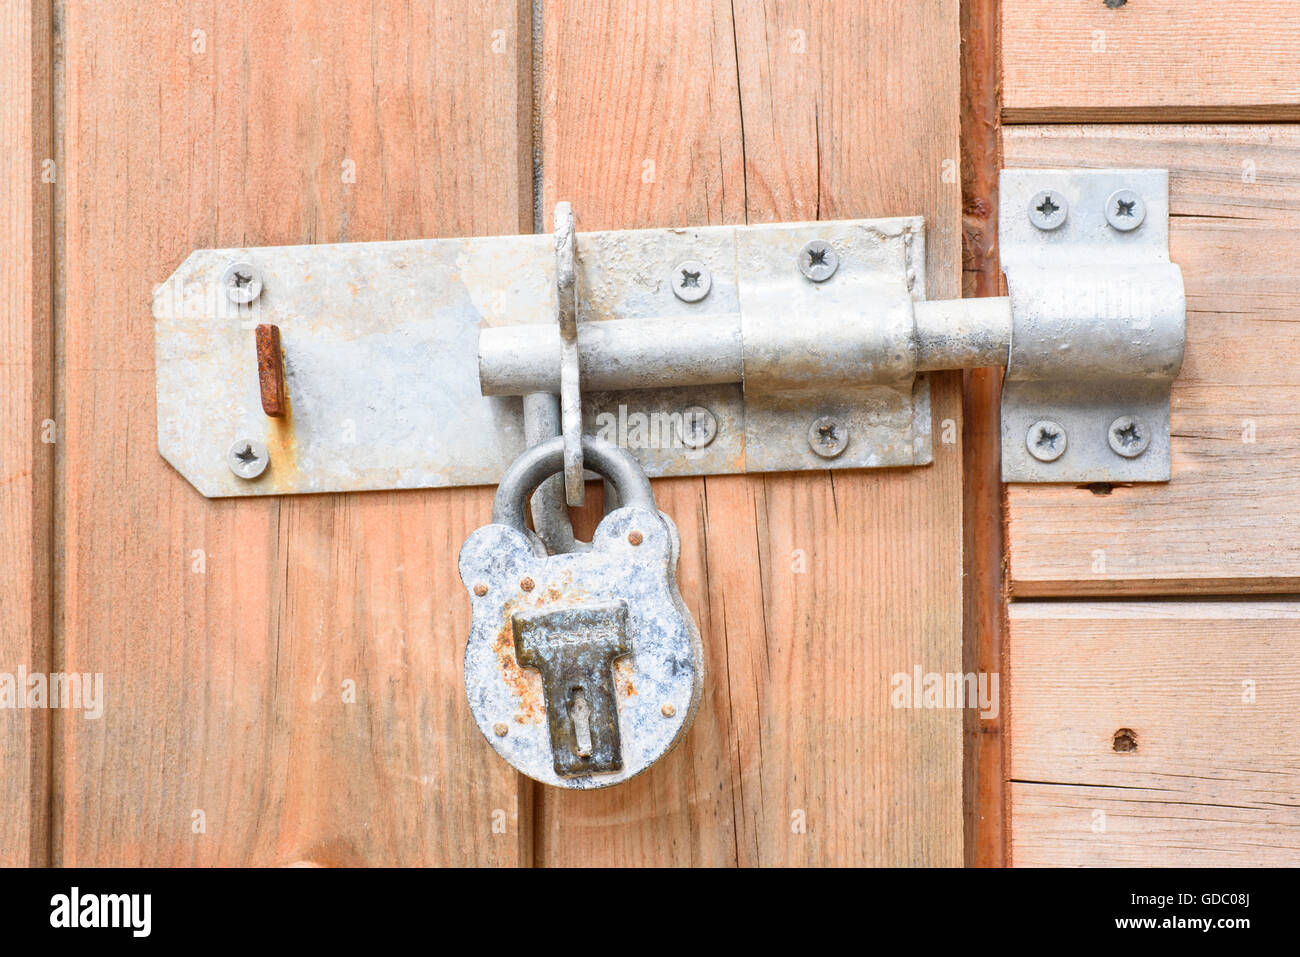 Heavy duty bolt and padlock on a wooden shed door - Stock Image & Padlock Bolted Door Stock Photos \u0026 Padlock Bolted Door Stock Images ...